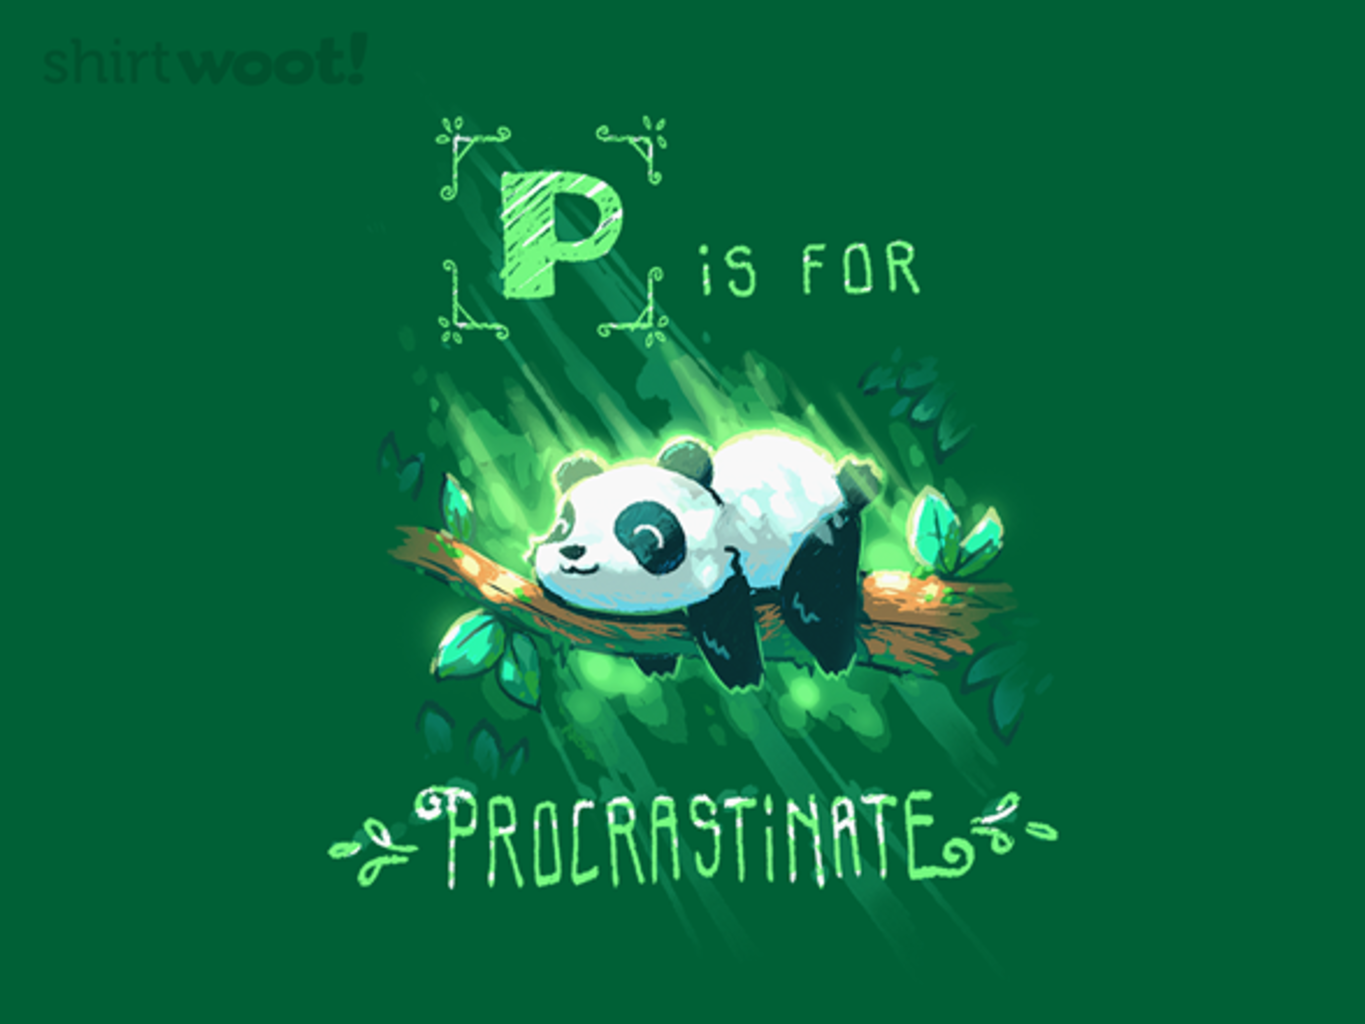 Woot!: P is for Procrastinate